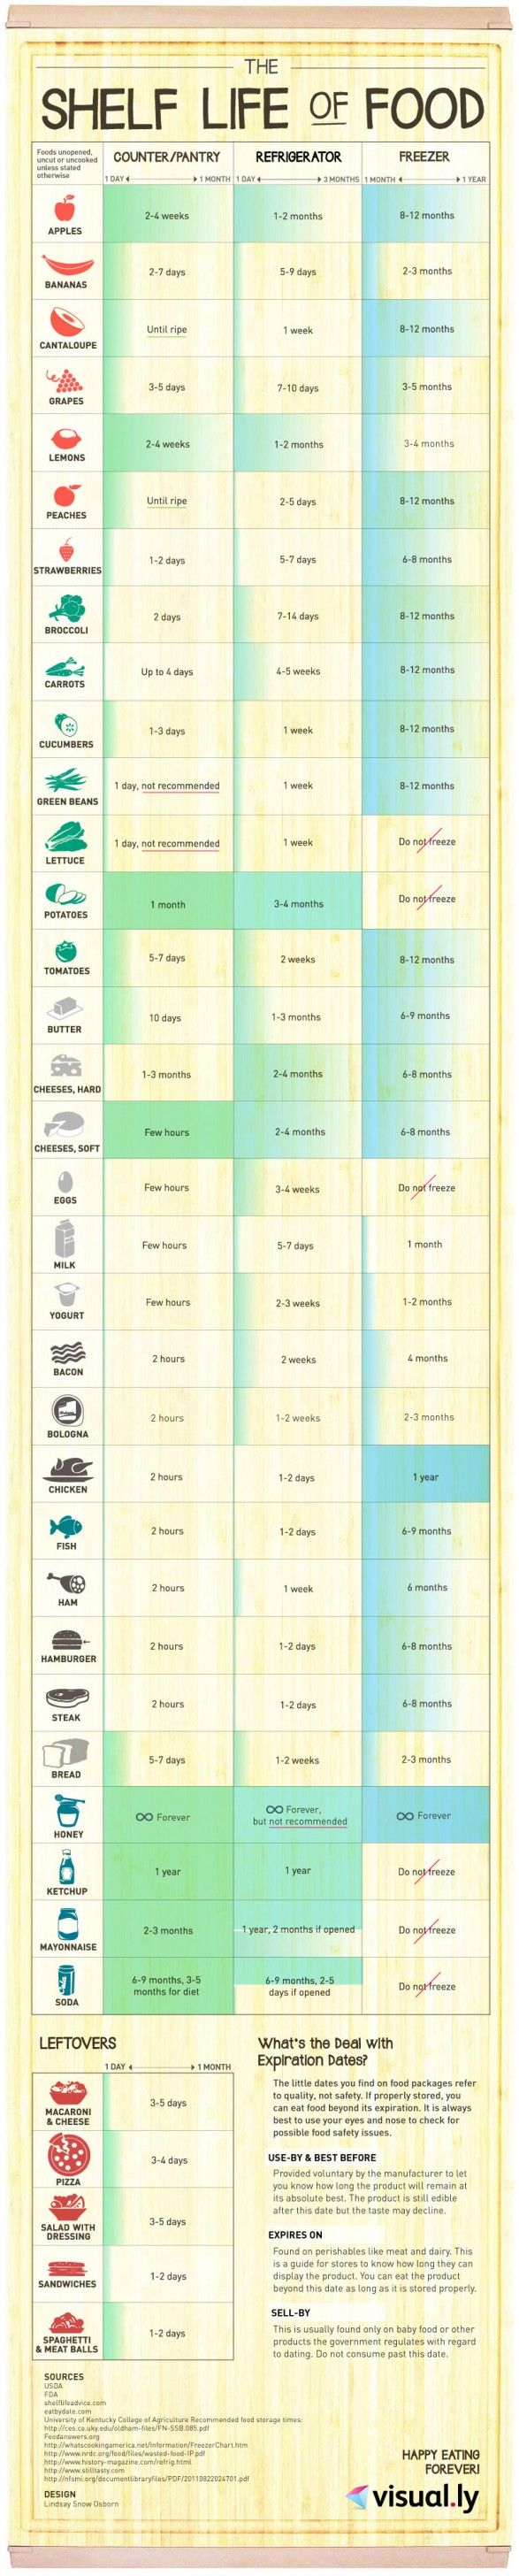 The Shelf Life of Food (infographic)